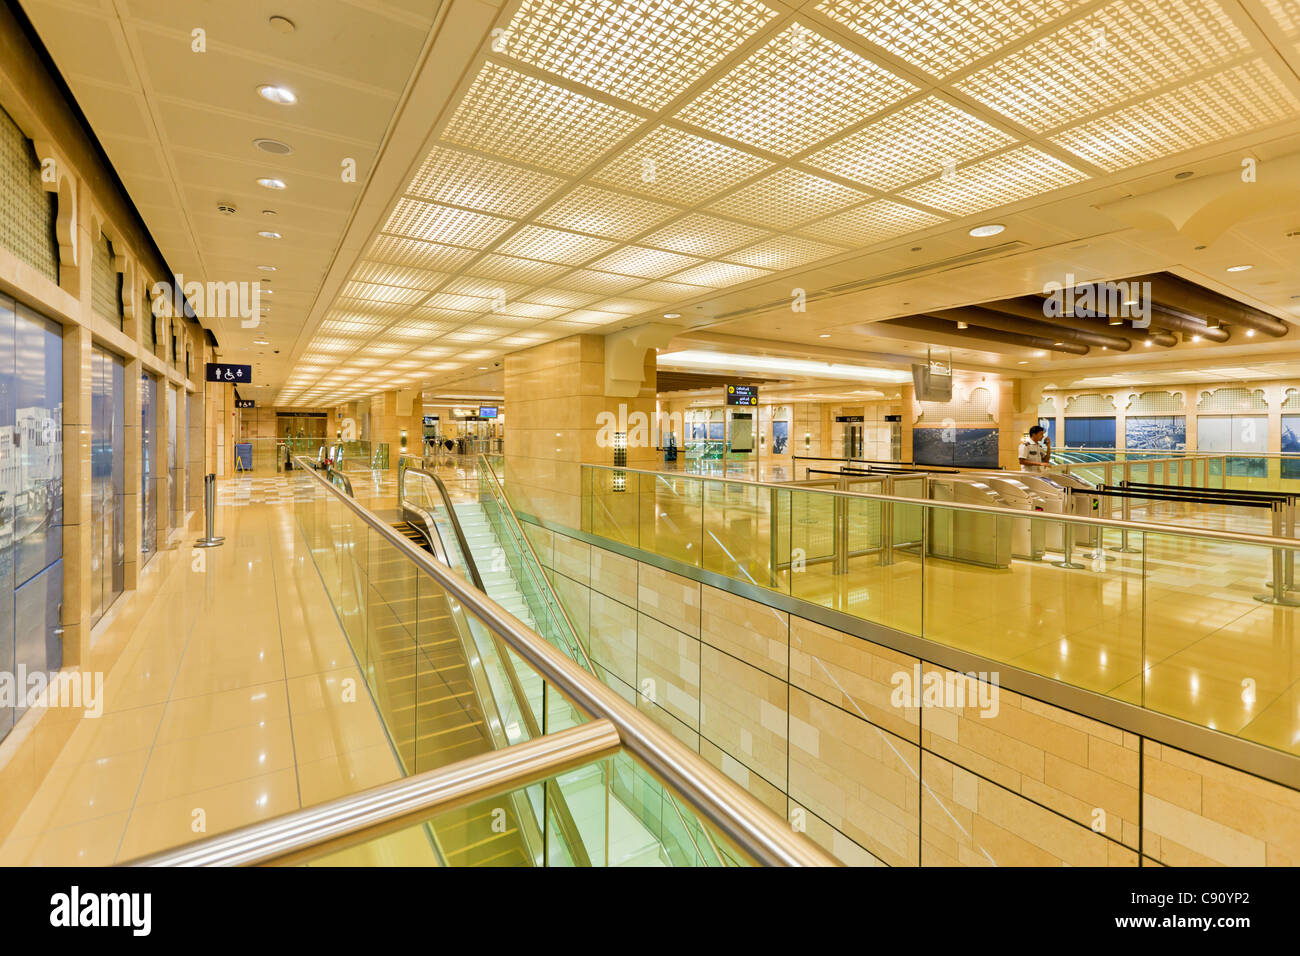 Al Ras Metro Station Interior, Dubai, United Arab Emirates, UAE, Middle East - Stock Image